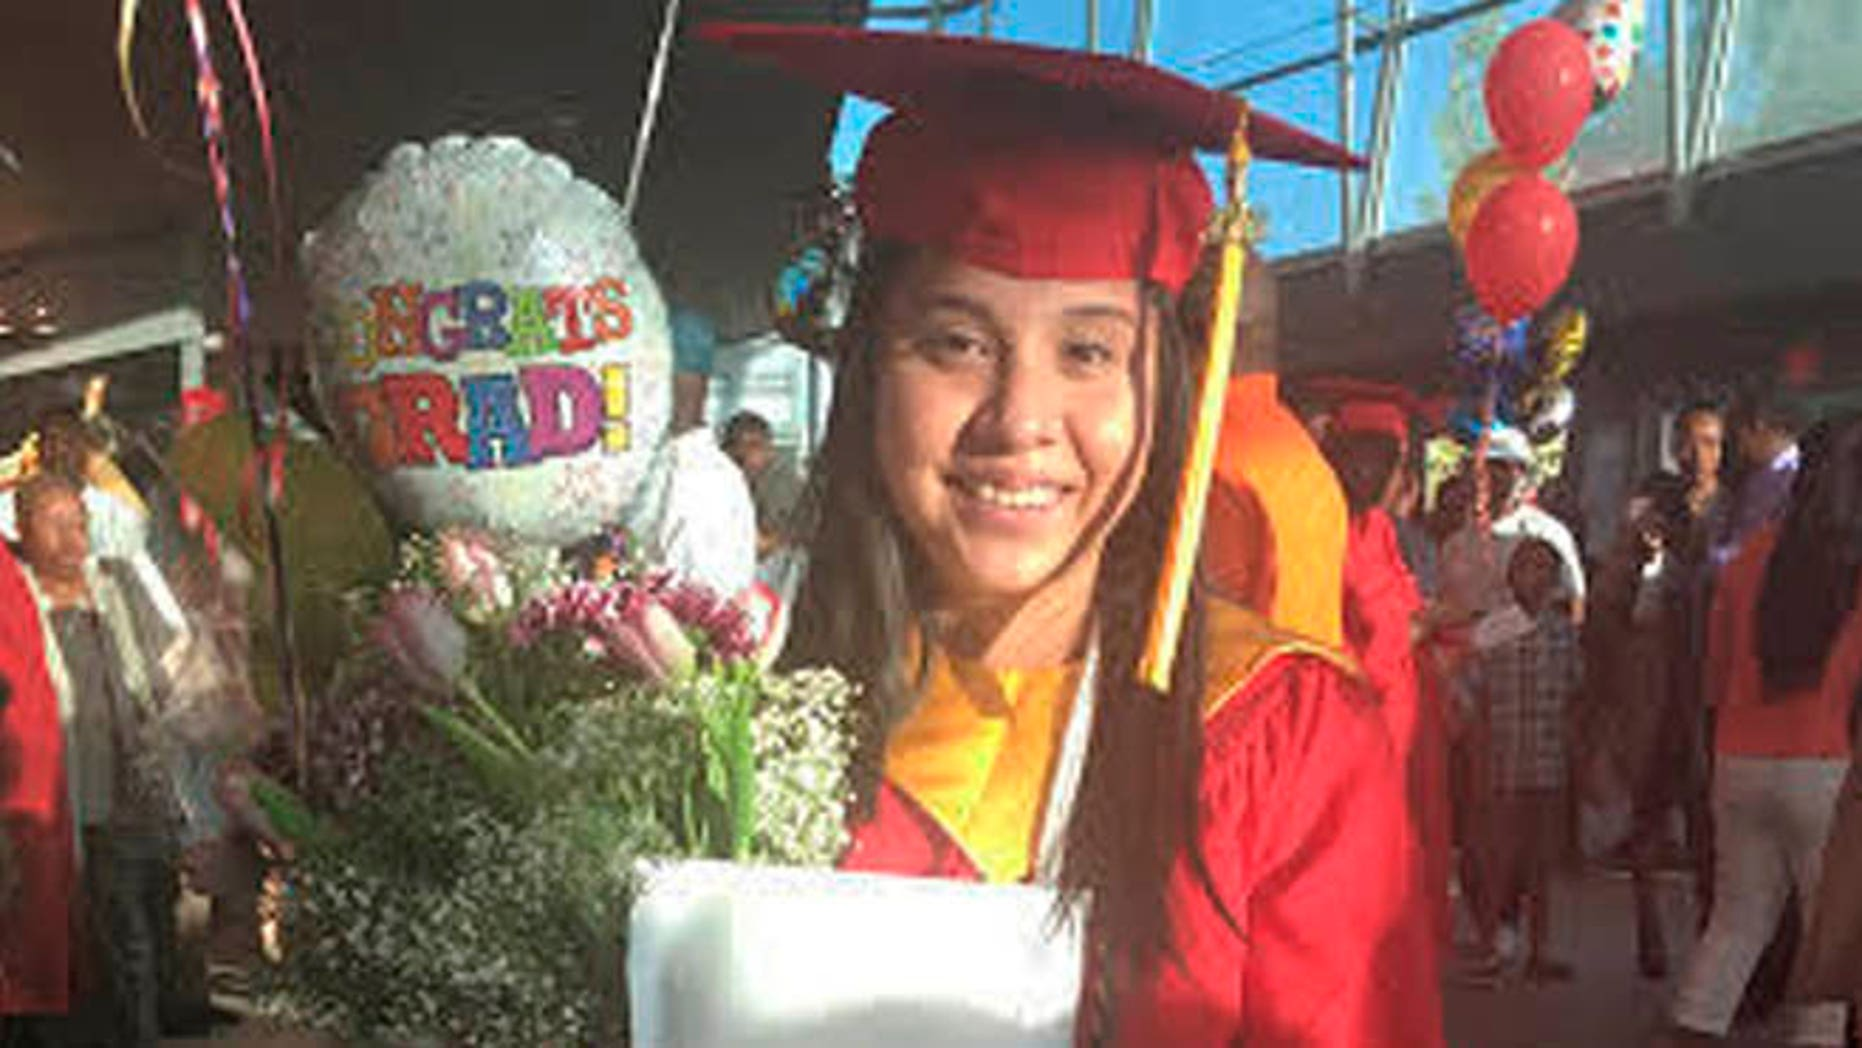 In this May 21, 2016 photo provided by Jessica Barcenas, Ivonne Barcenas Garcia poses in her cap and gown after her high school graduation held at the University of Georgia's Stegeman Coliseum in Athens, Ga. Growing up in Athens, Ivonne Barcenas, 18, had hopes of attending the University of Georgia. But a state law prohibits immigrants without permanent legal status from attending top public universities. Barcenas, whose family came from Mexico when she was 3, is among dozens of students awarded a private scholarship to attend Eastern Connecticut State University in the fall. The scholarship program helps immigrants from states with policies like Georgia's to attend and pay for college. (Jessica Barcenas via AP)